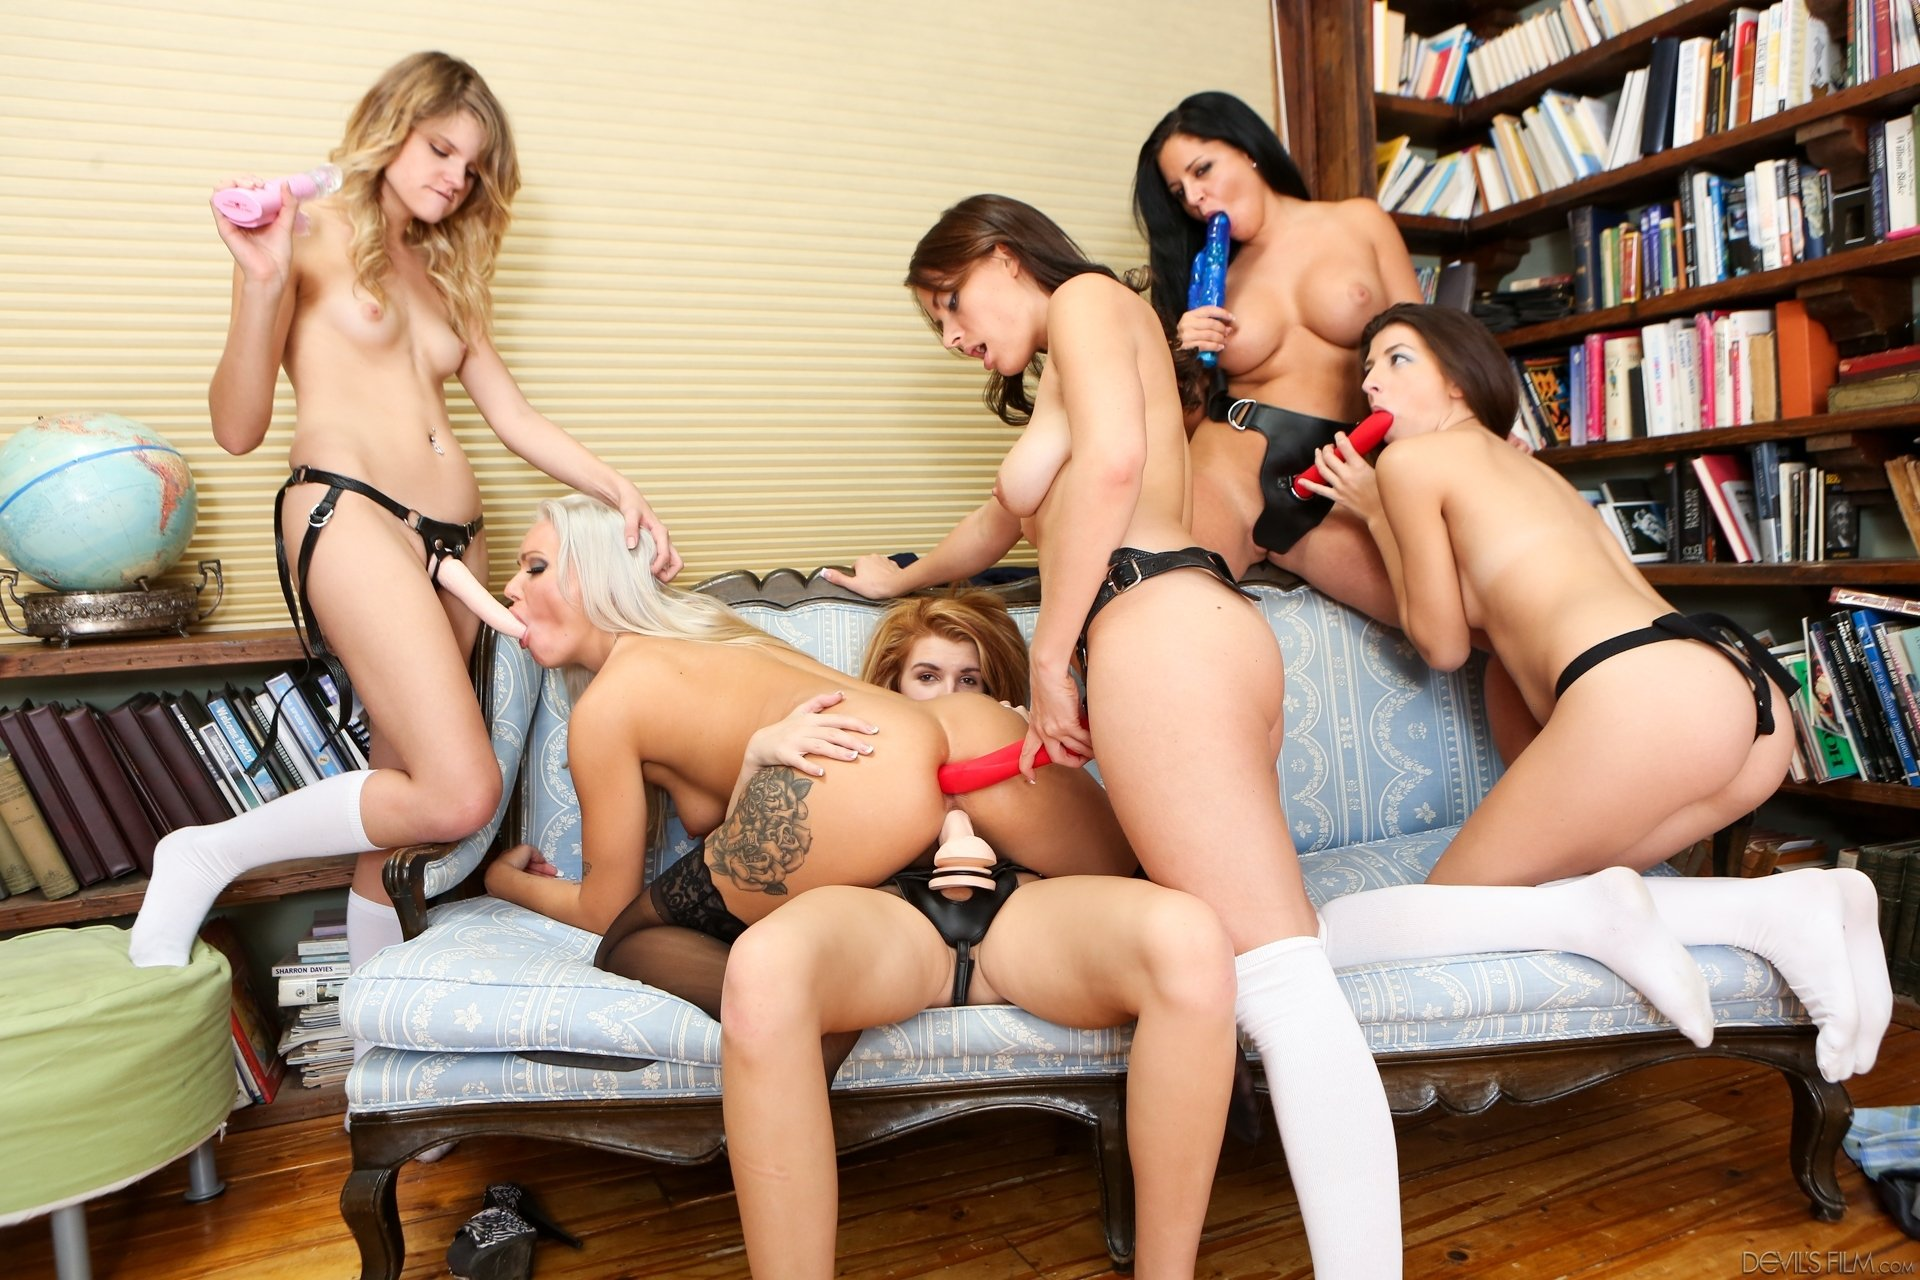 Hardcore lesbian group sex with big toys